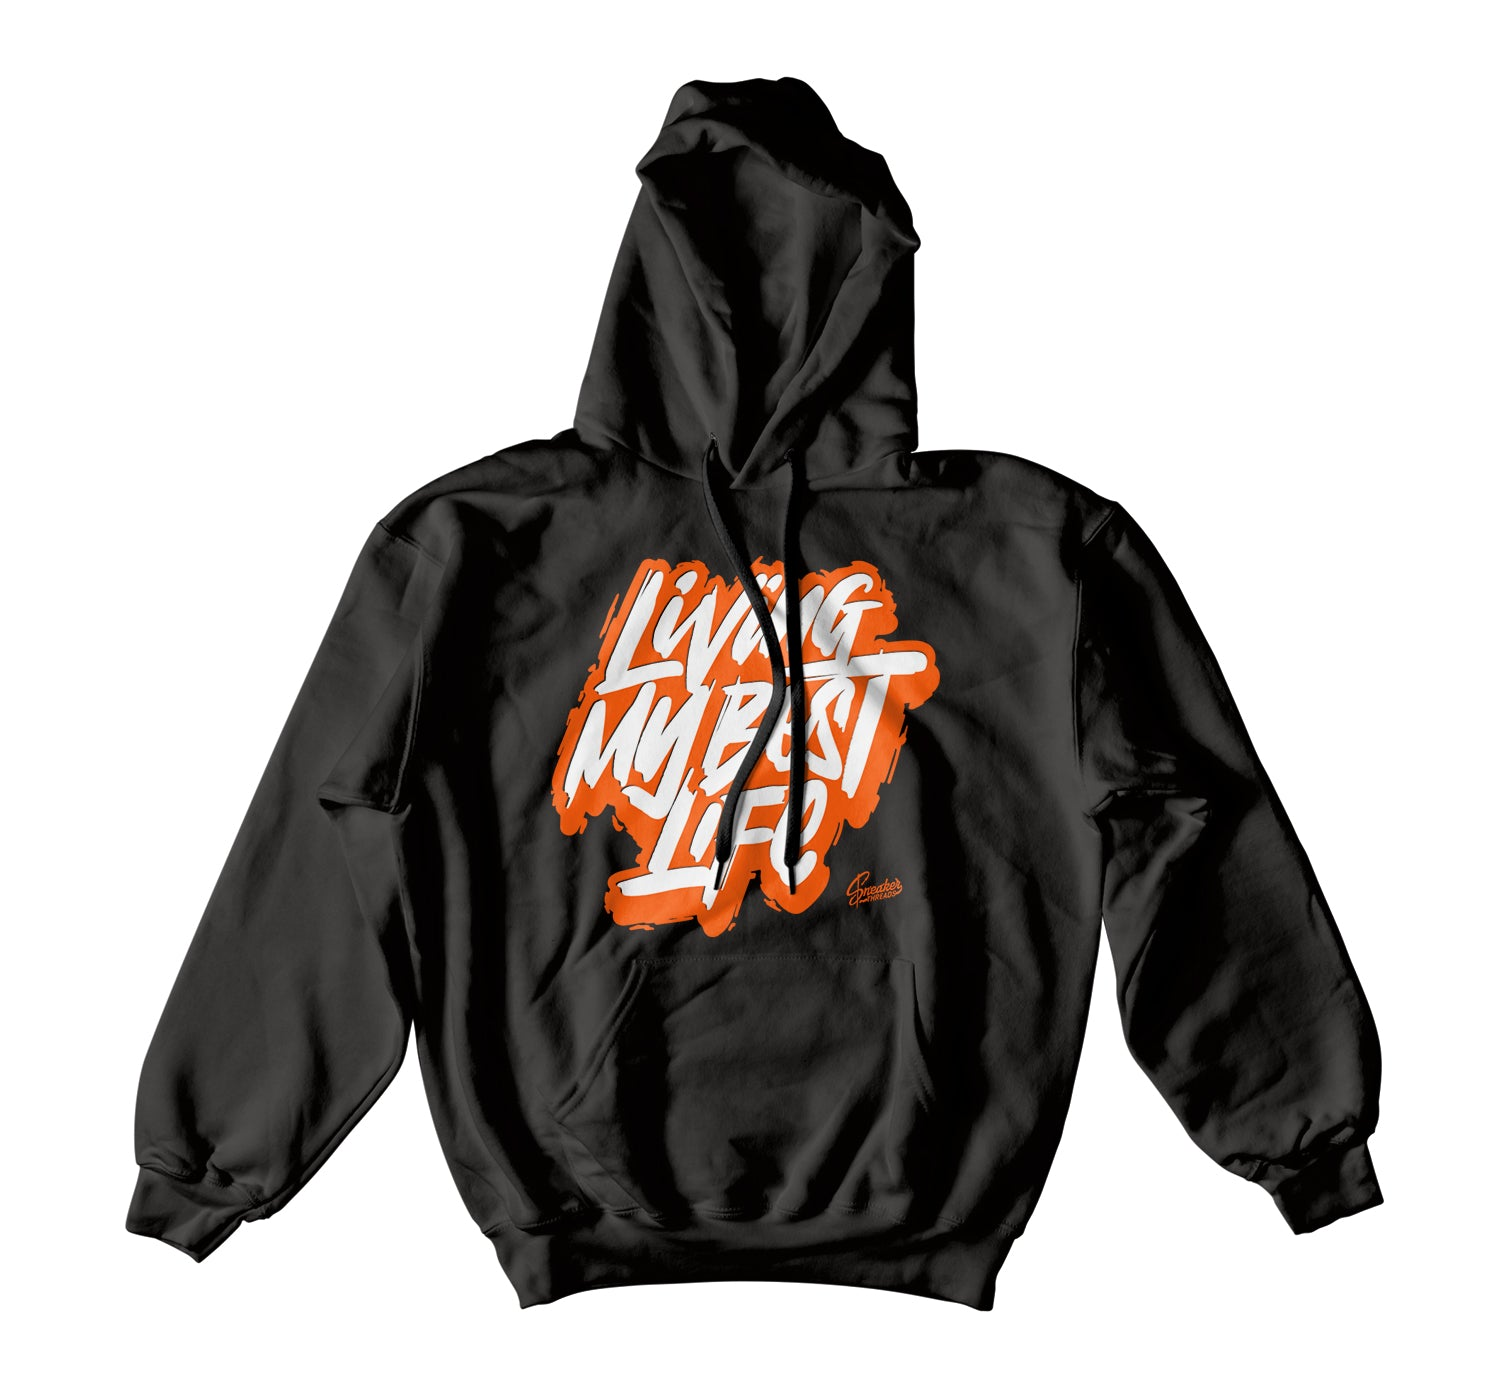 Hoodies match foamposite shattered backboard foam shoes.